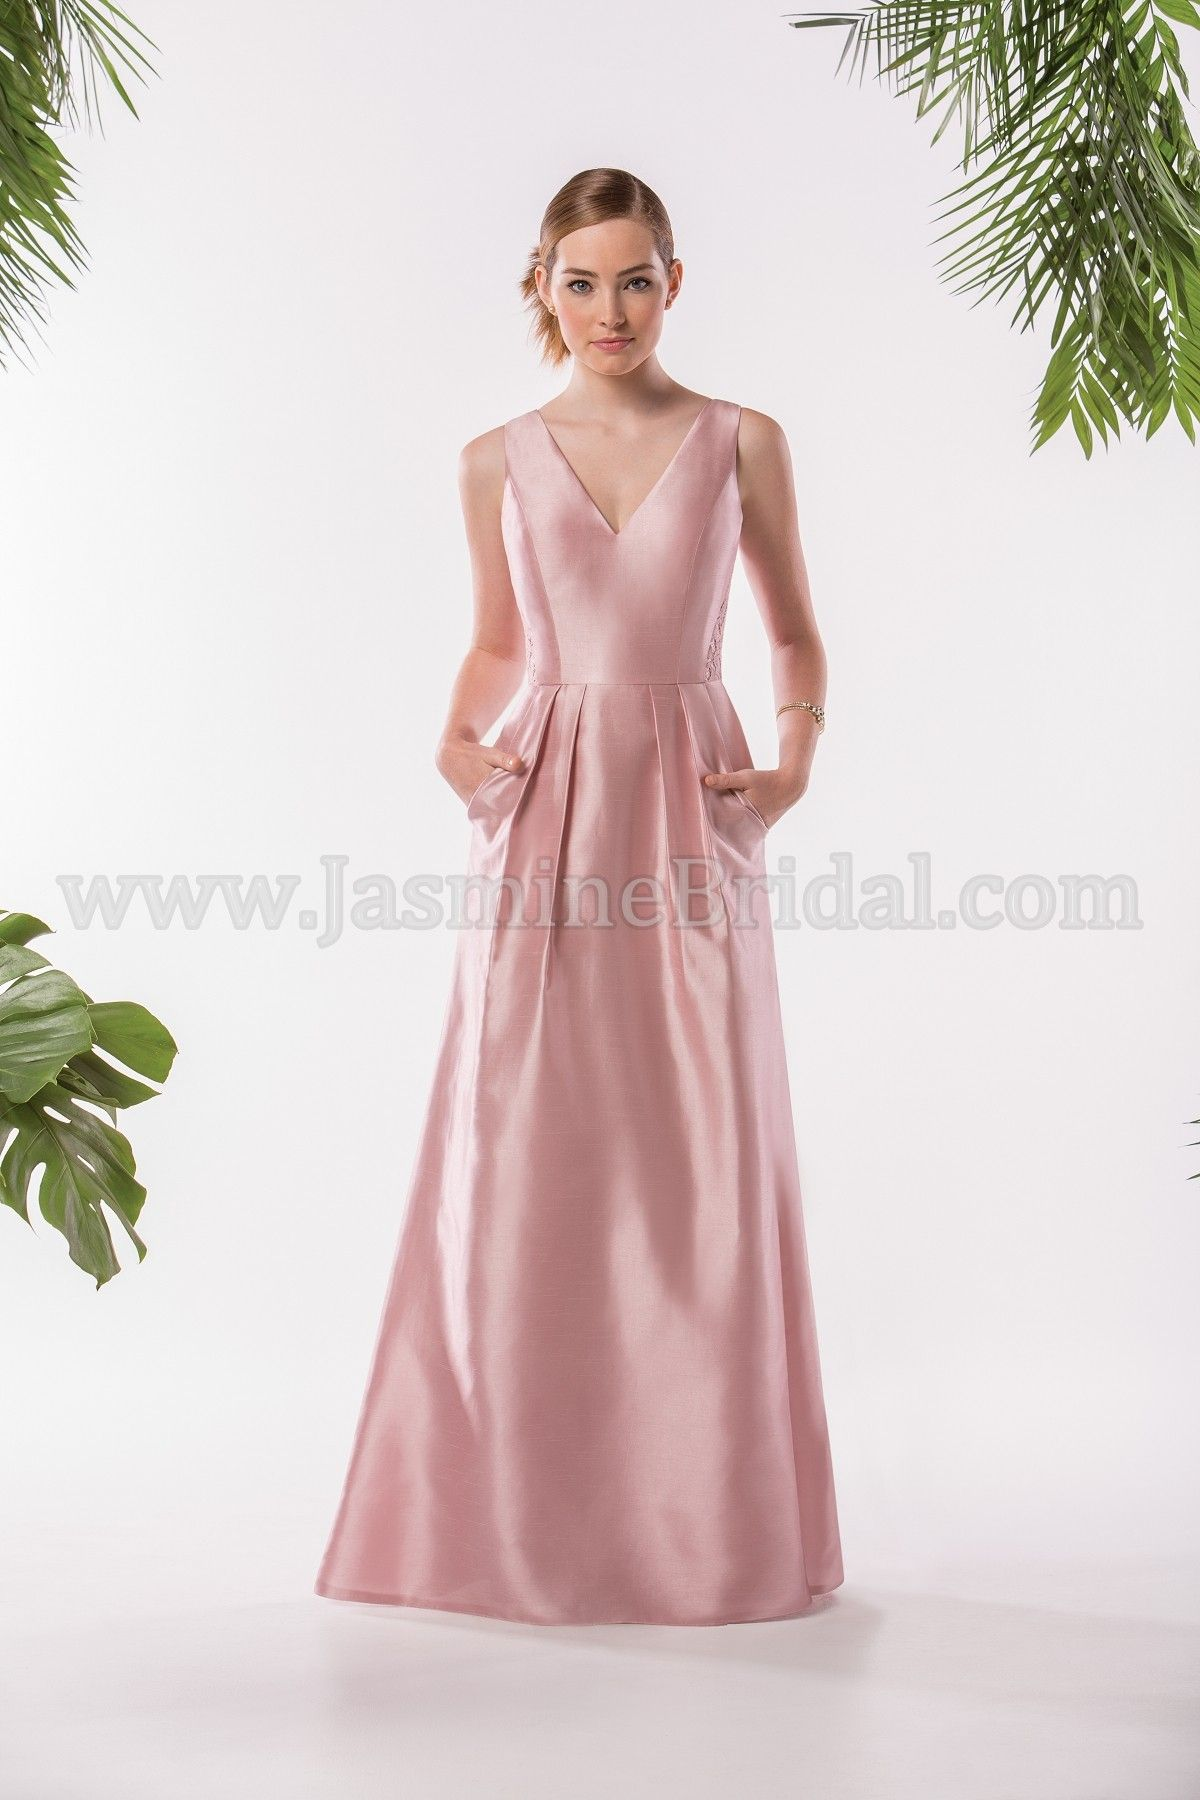 Jasmine Bridal Bridesmaid Dress Bridesmaids Style P186009 In Misty Pink